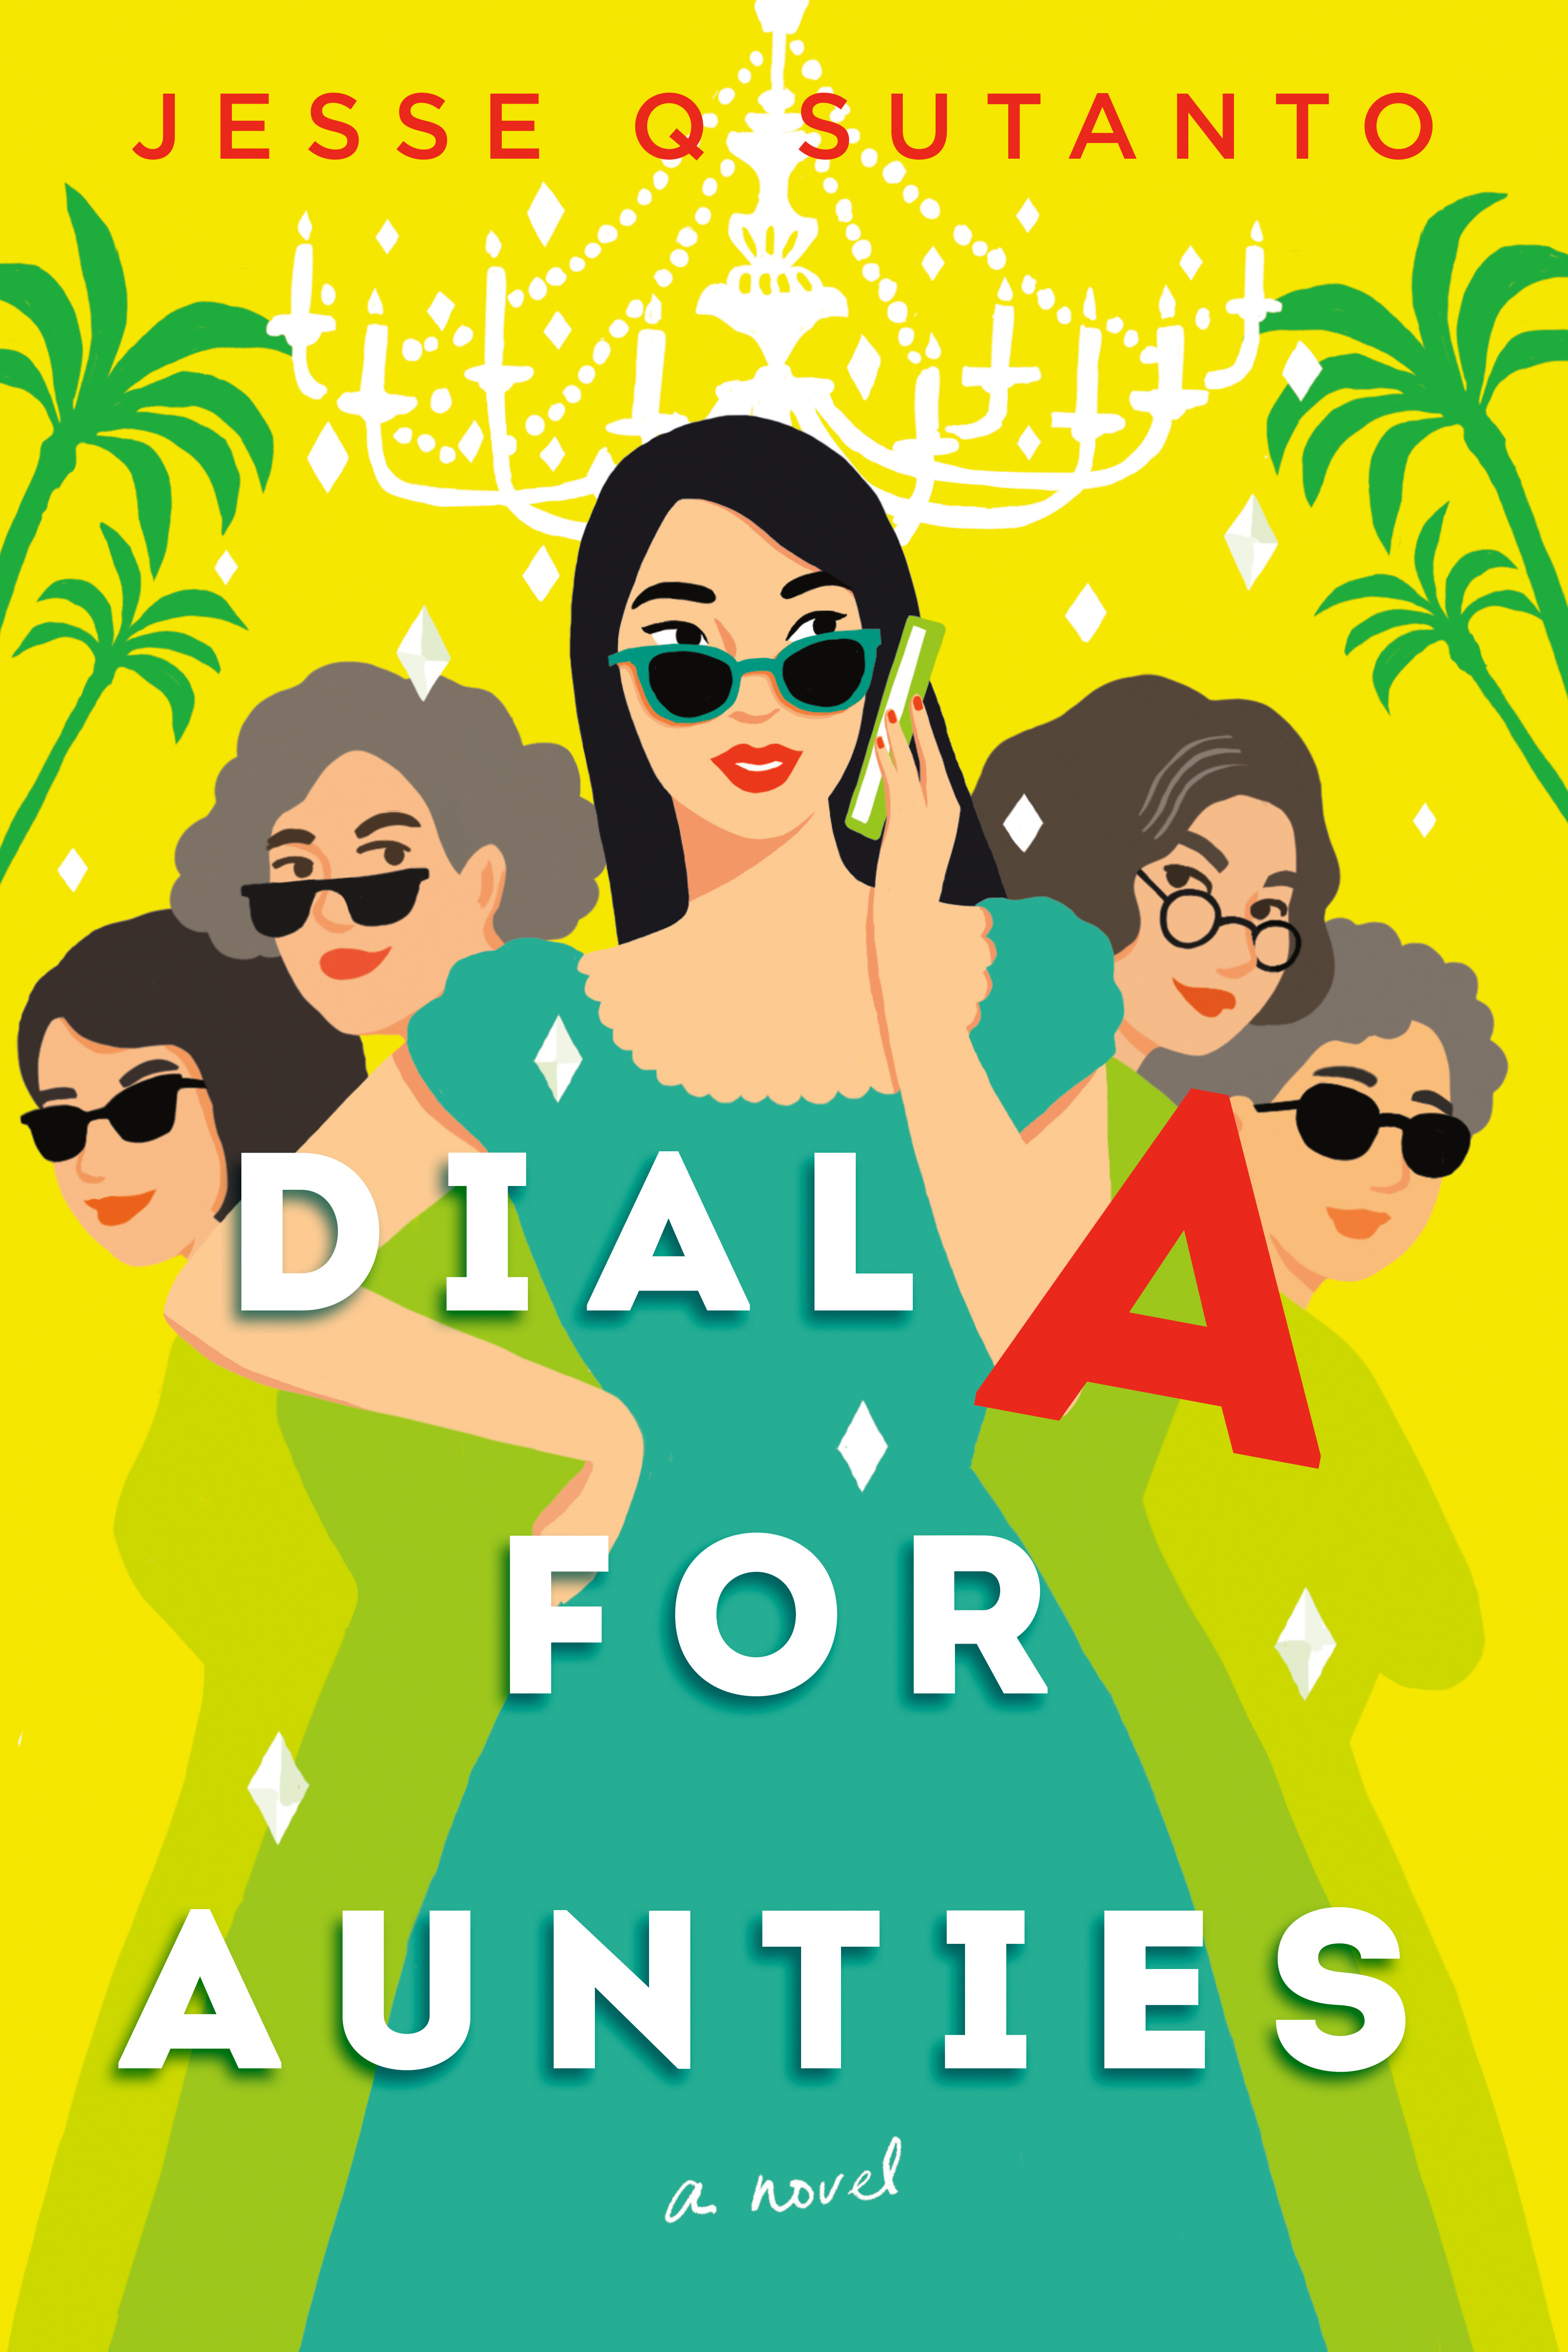 Book cover: Dial A for Aunties by Jesse Q. Sutanto